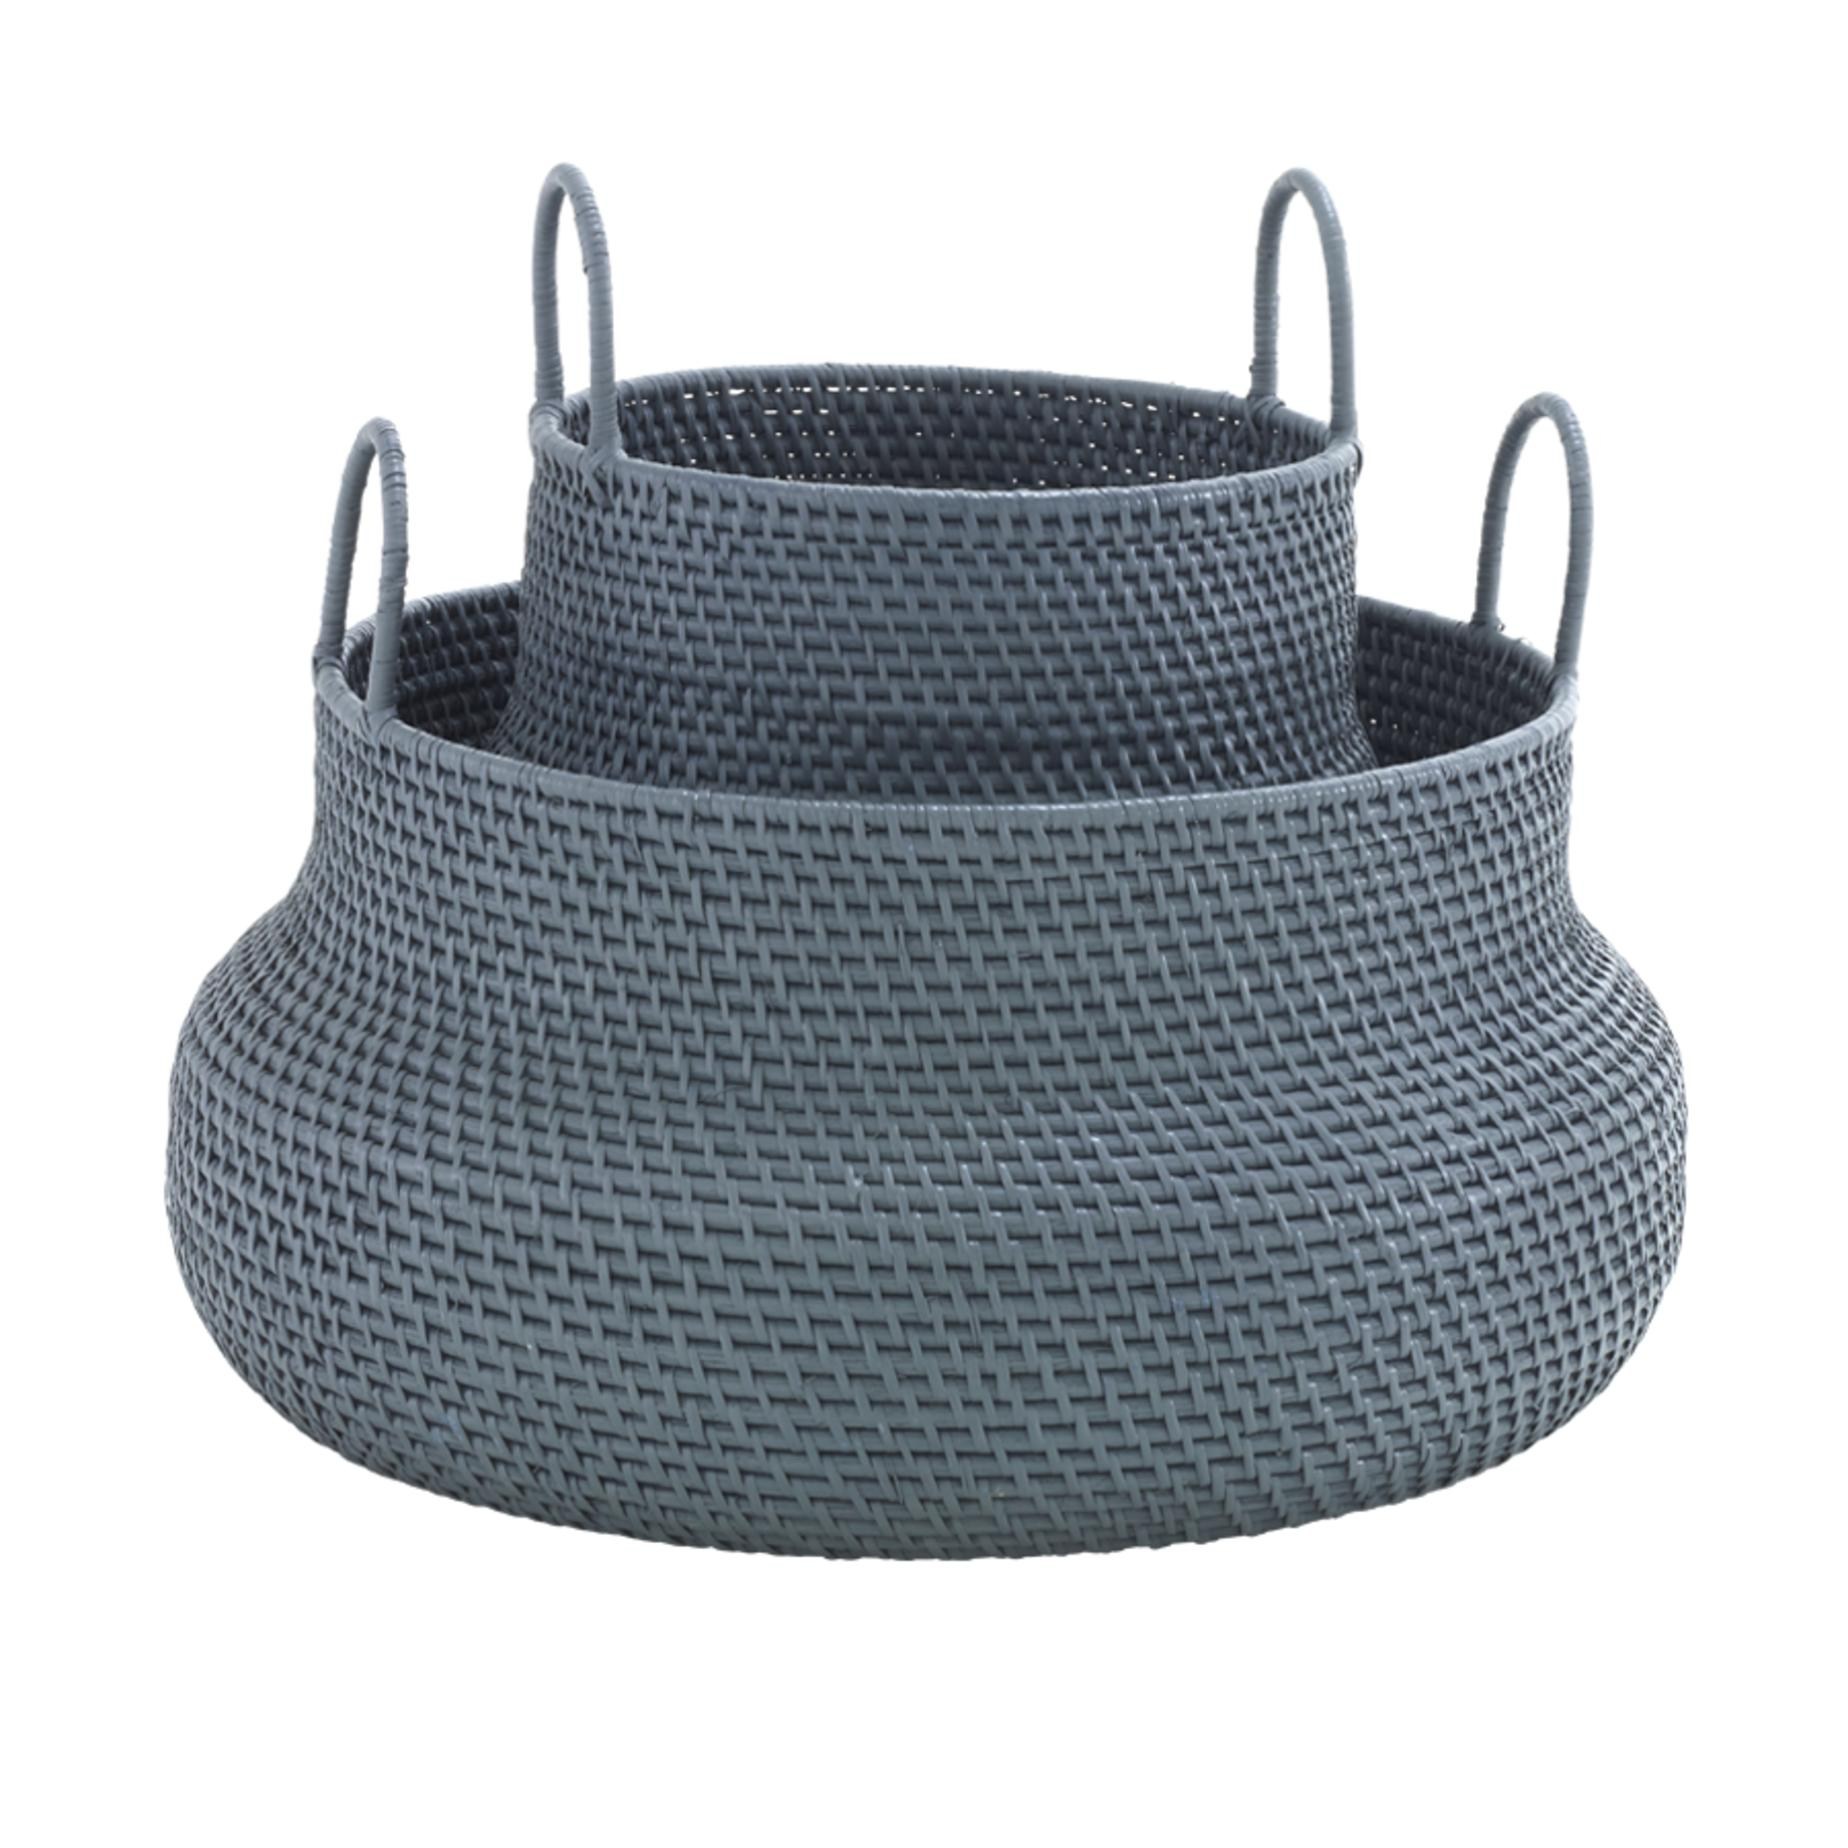 BASKET LOW VERSION GREY Ligne Roset